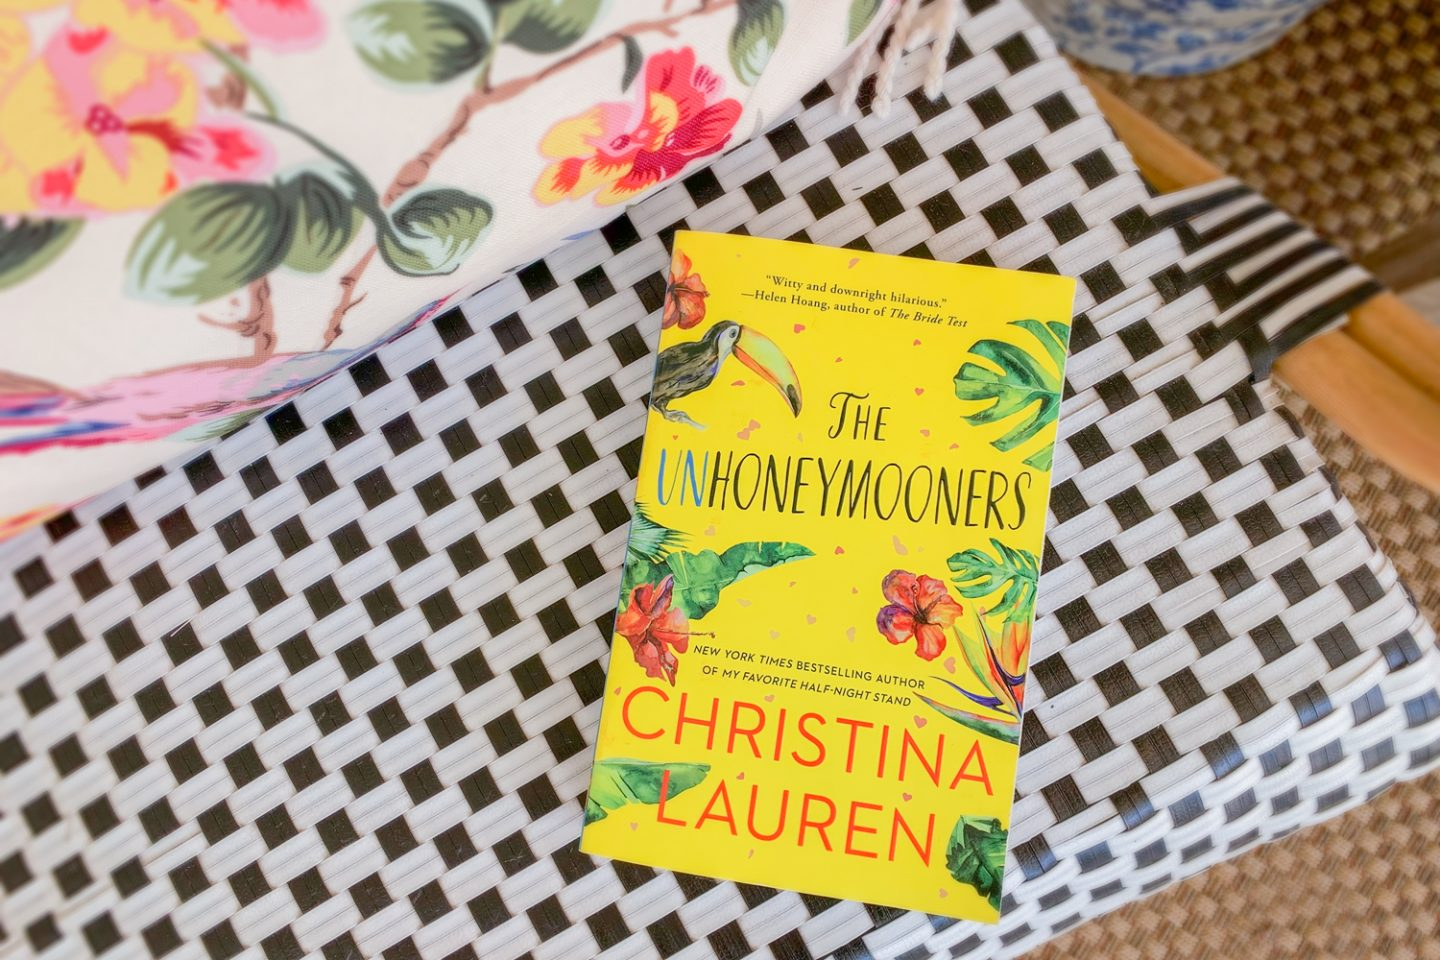 Discussion: The Unhoneymooners by Christina Lauren